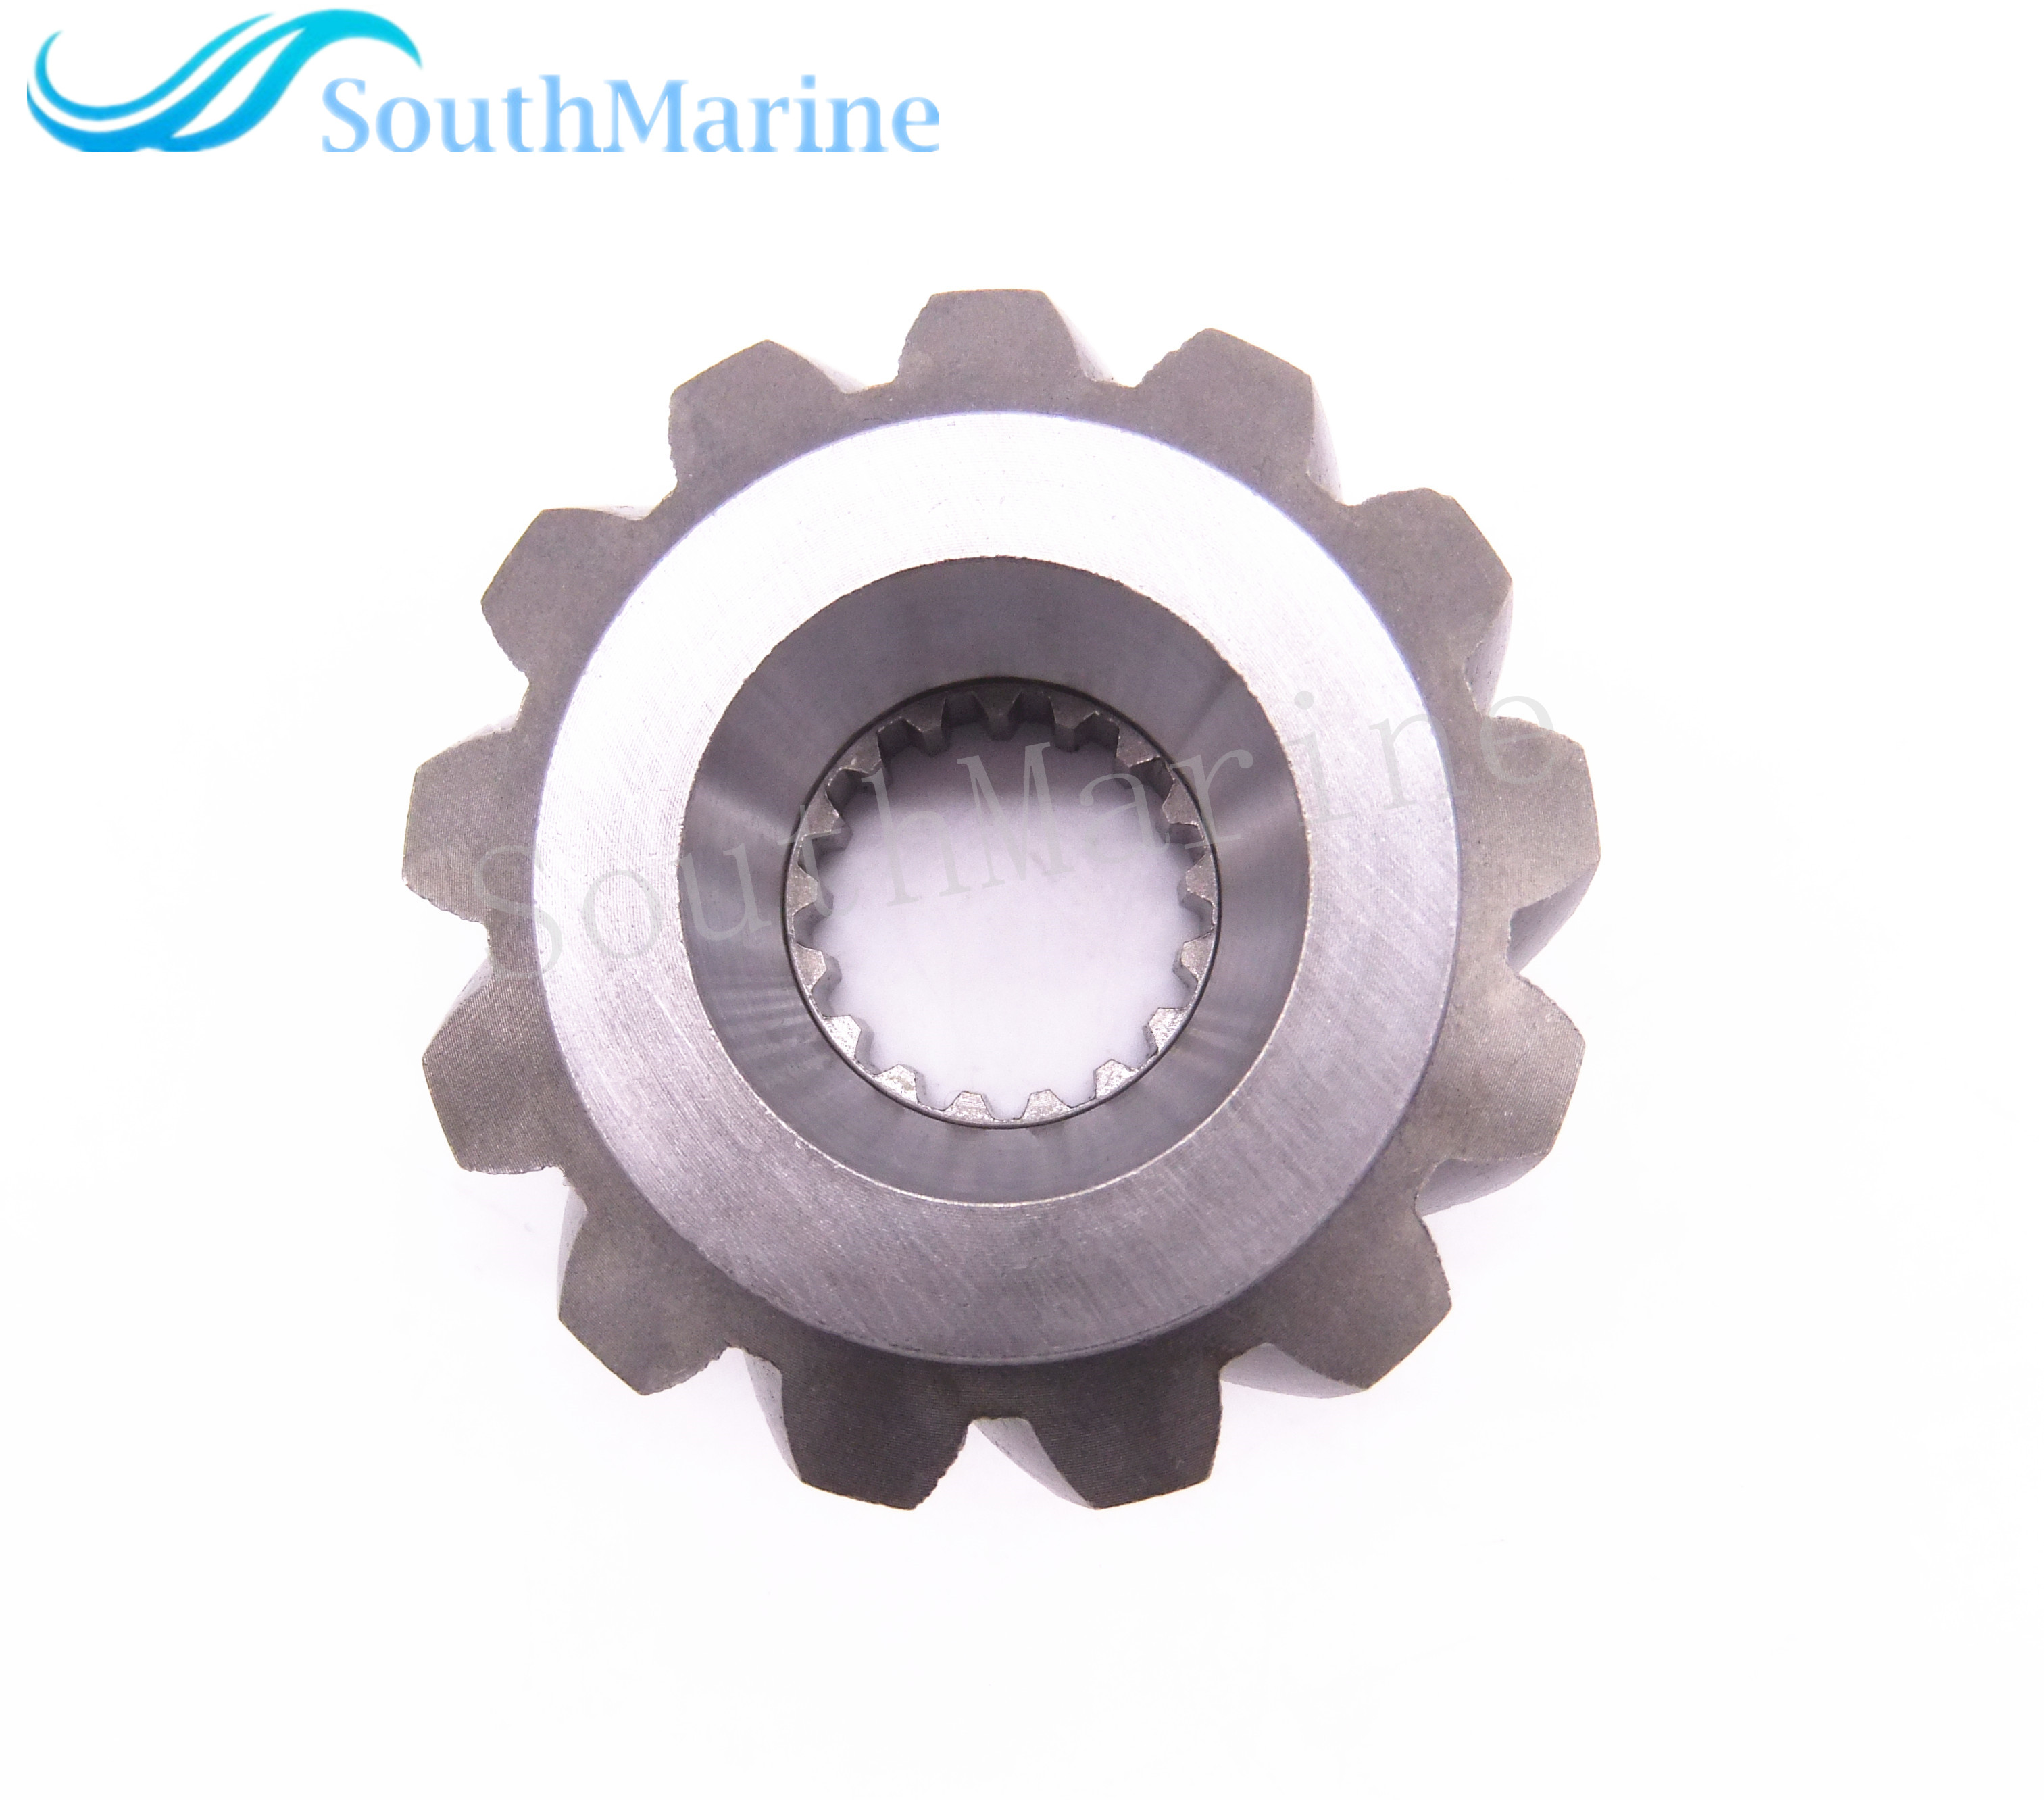 Atv,rv,boat & Other Vehicle Boat Motor T85-04000605 Pinion Gear For Parsun Hdx Outboard Engine 2-stroke T75 T85 T90 Free Shipping Available In Various Designs And Specifications For Your Selection Automobiles & Motorcycles